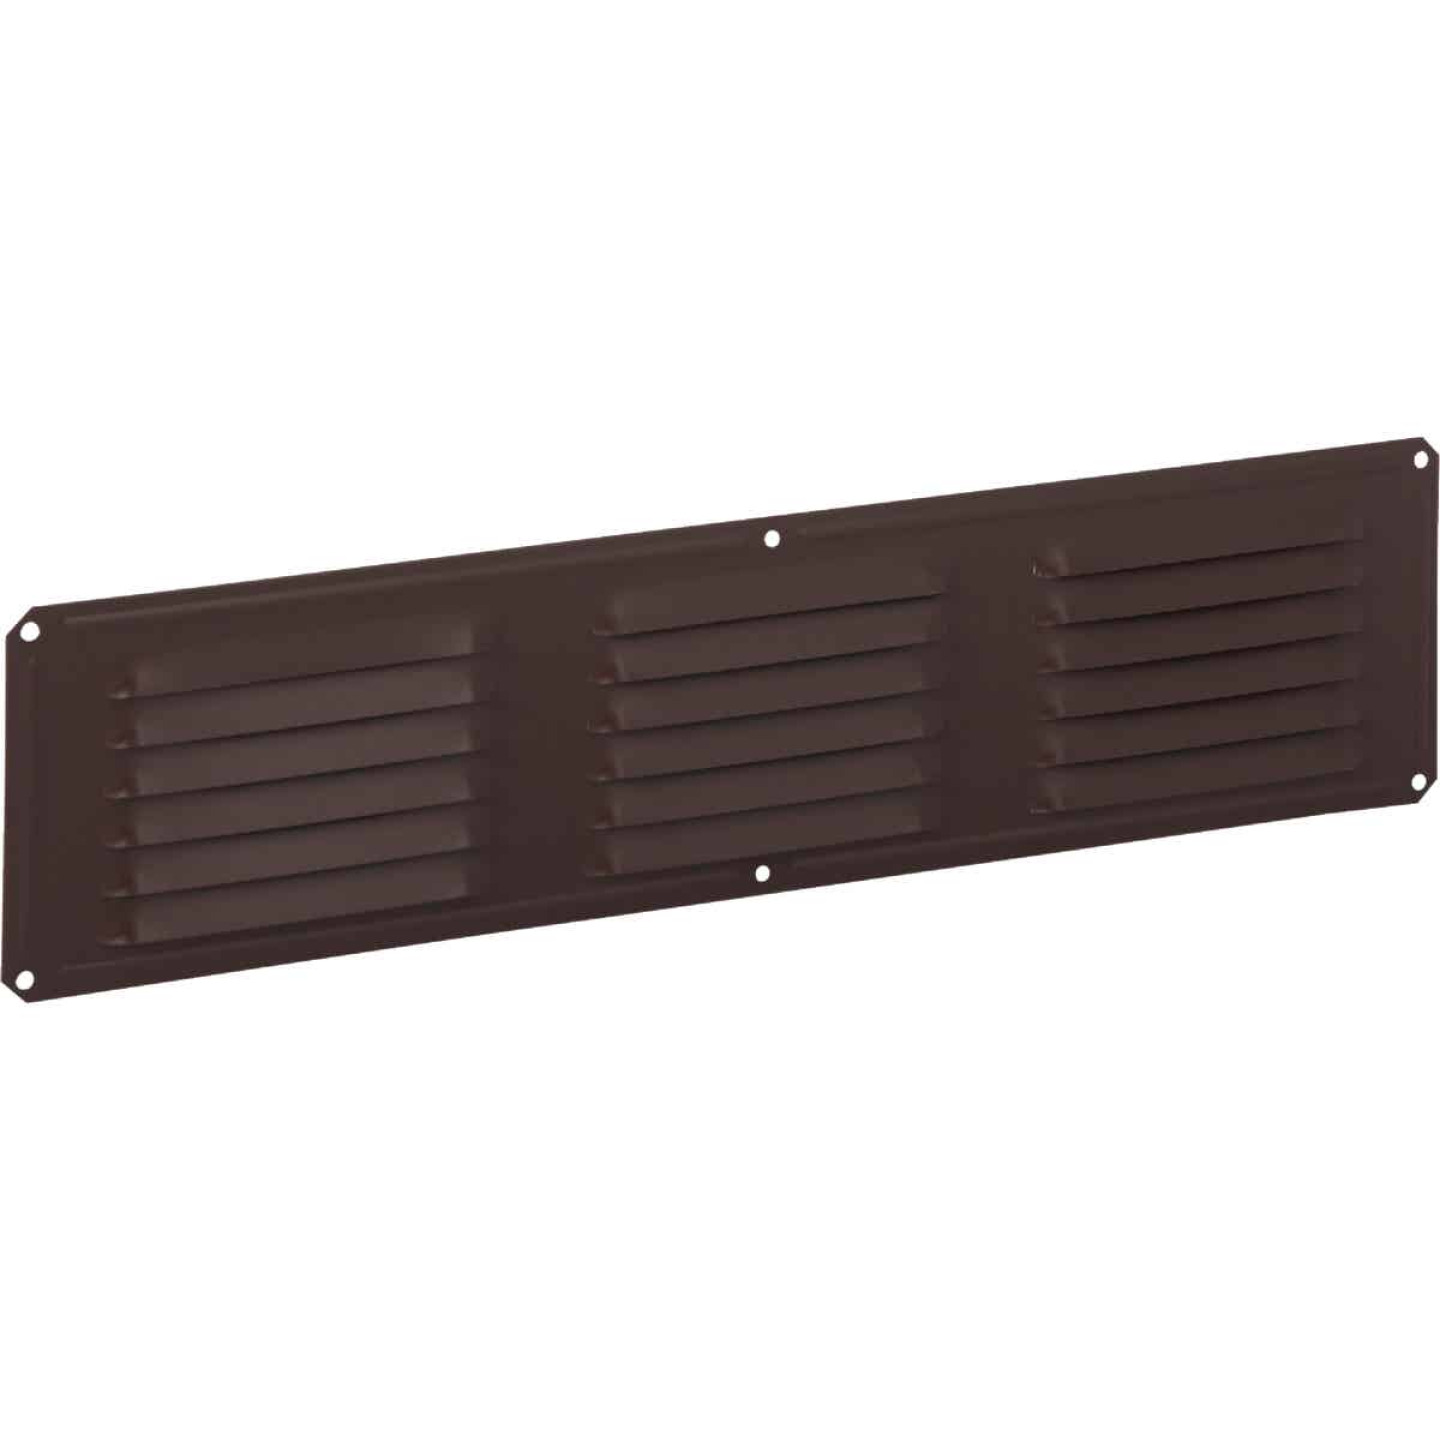 Air Vent 16 In. x 4 In. Brown Aluminum Under Eave Vent Image 1